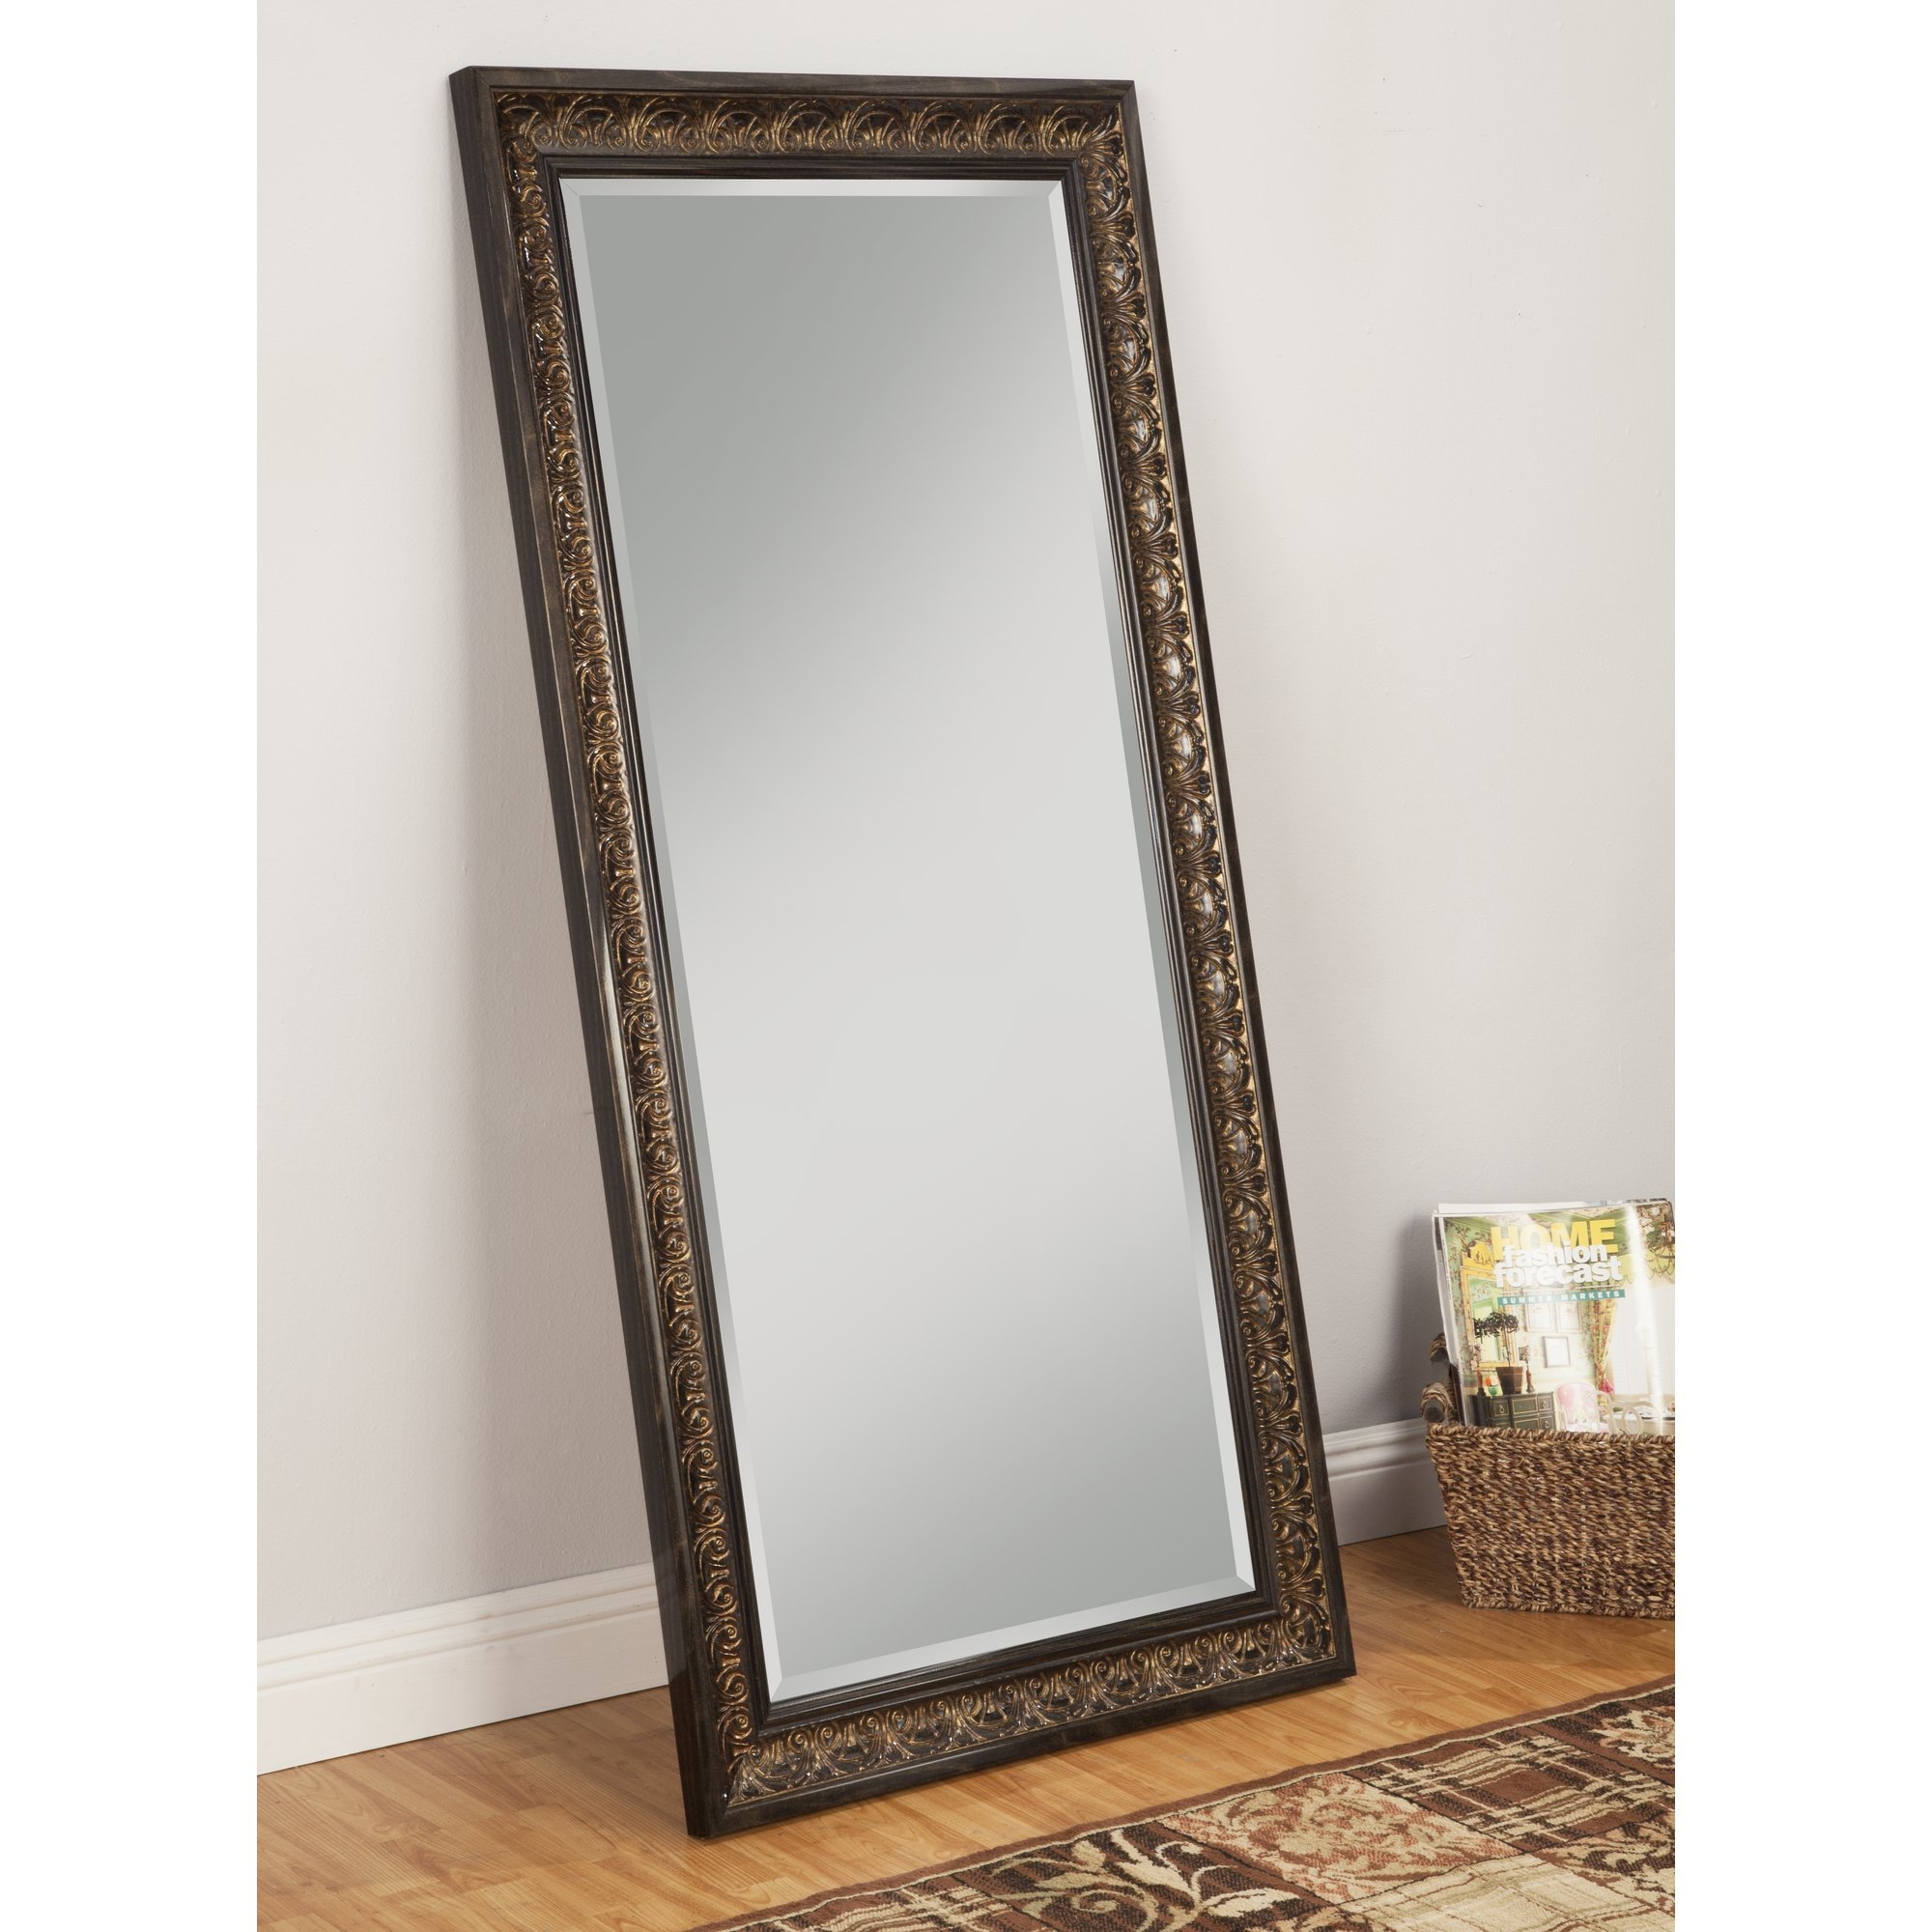 Floor Mirrors Youll Love Wayfair Throughout Big Standing Mirror (View 12 of 15)